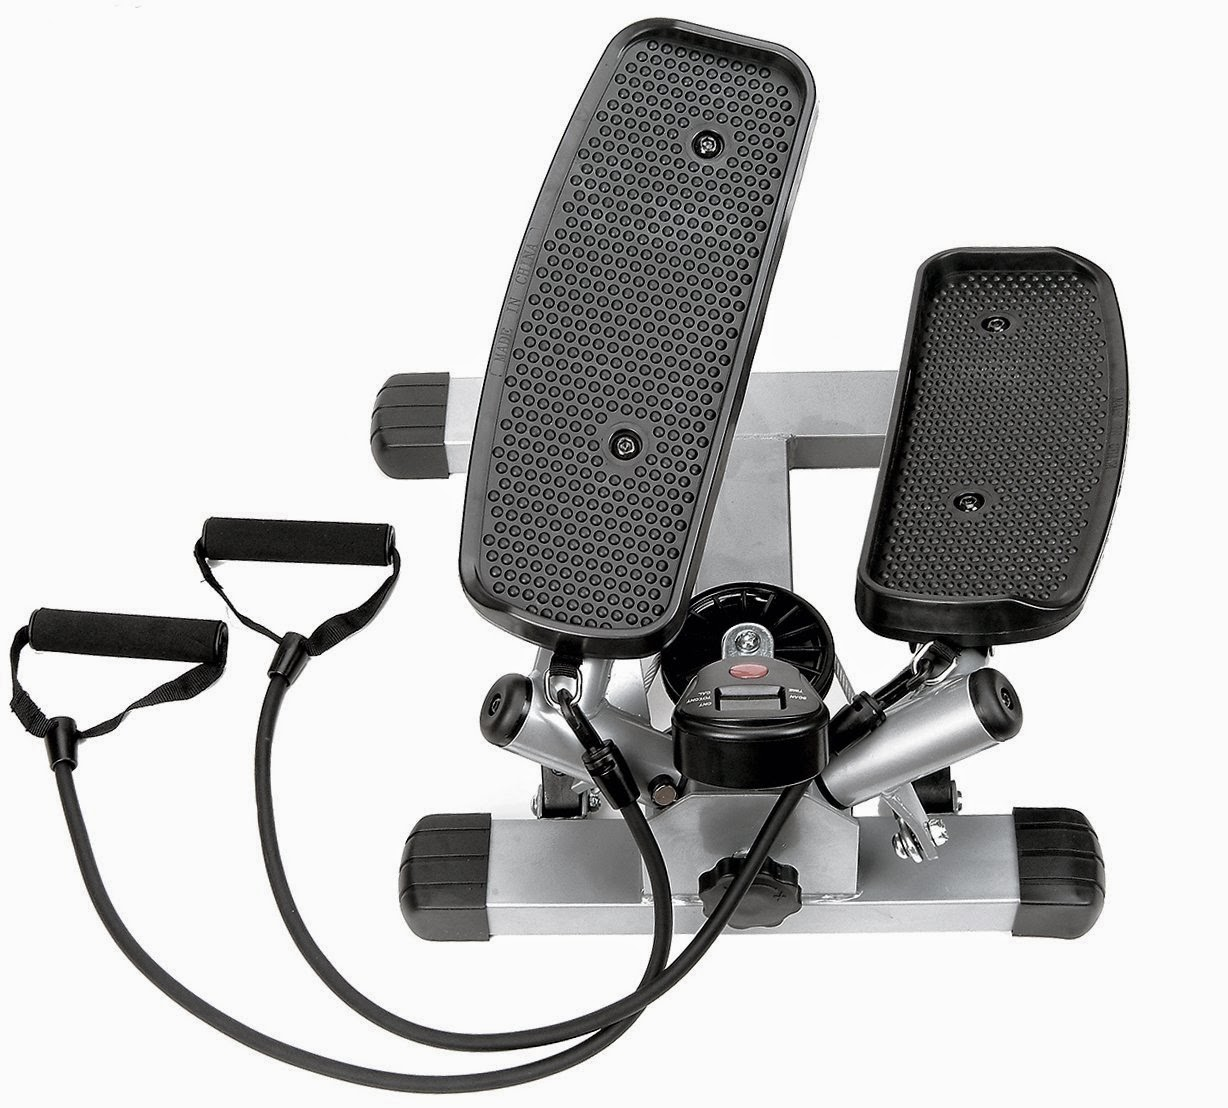 Health and Fitness Den: Sunny Twister Stepper, Review